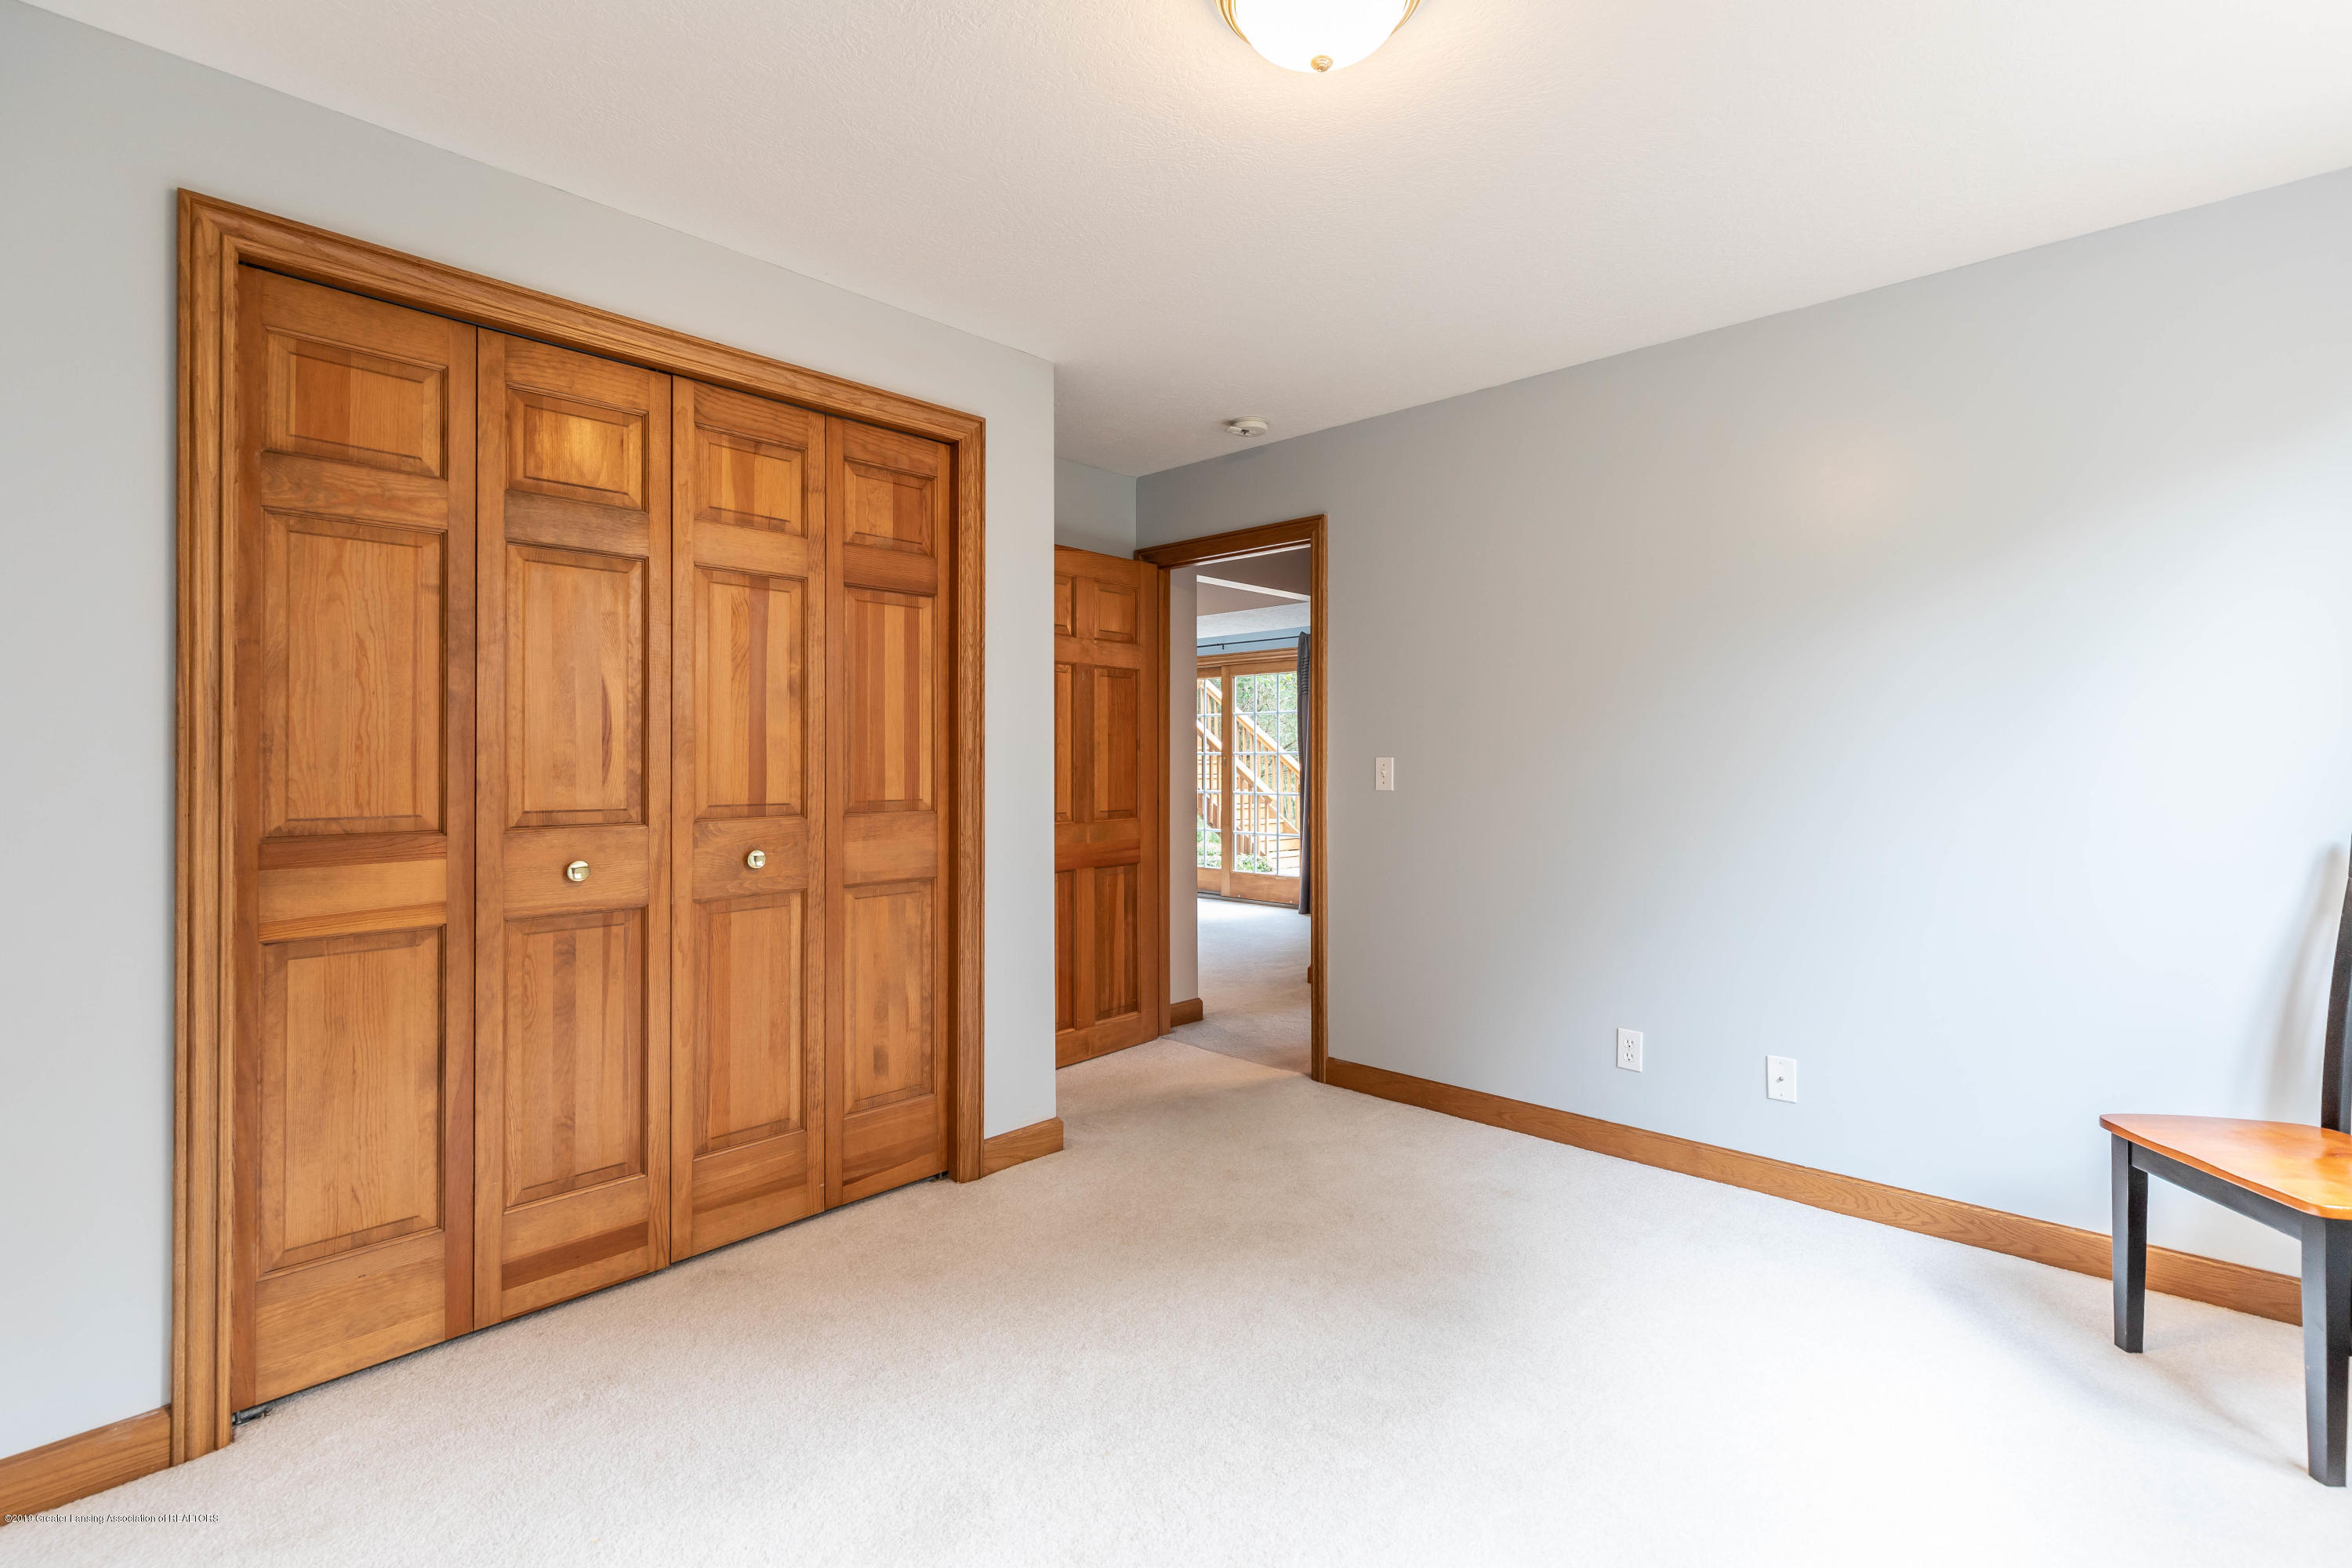 13185 Watercrest Dr - Bedroom #2 - 27